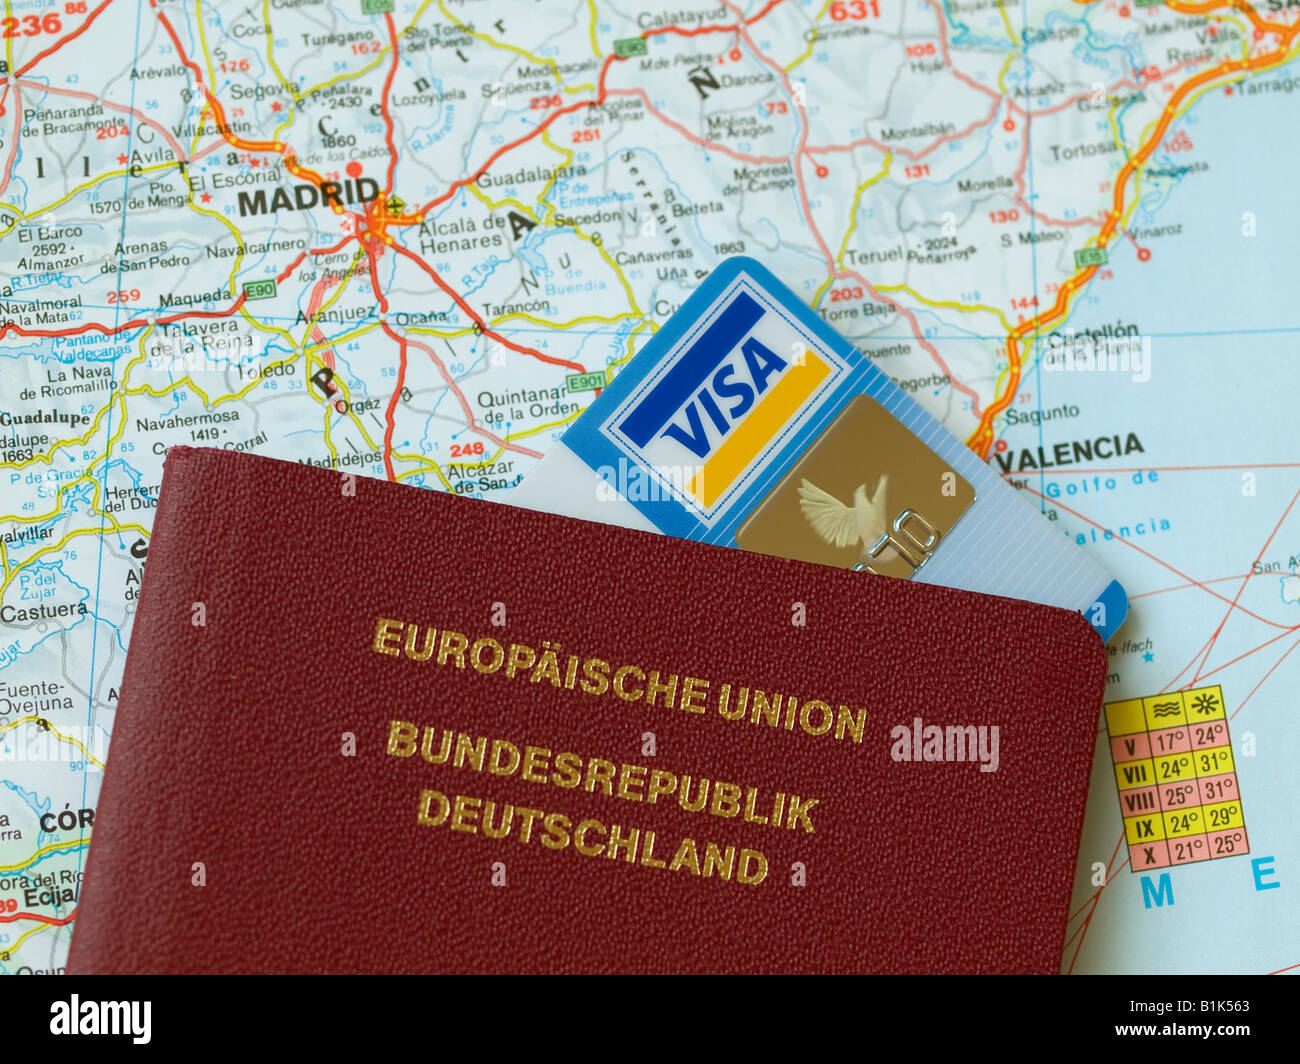 Travel Map Of Spain.Passport Travel Visa Card Credit Card On A Map Of Spain With Madrid